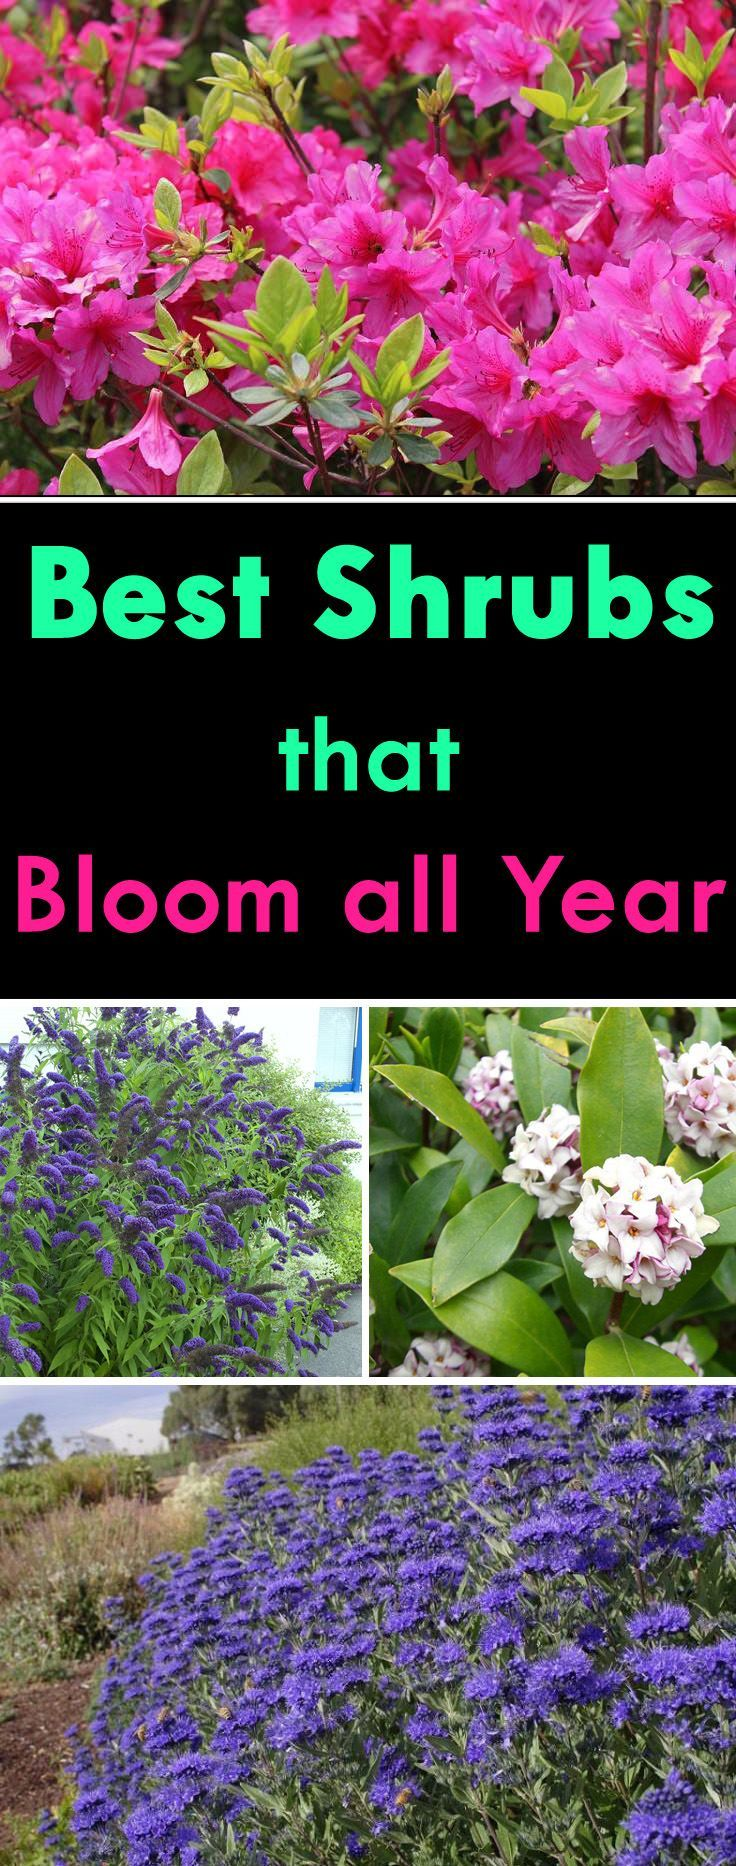 Year round plants for flower beds - With Careful Planning And Design You Could Have Your Shrubs Flowering In Your Garden All